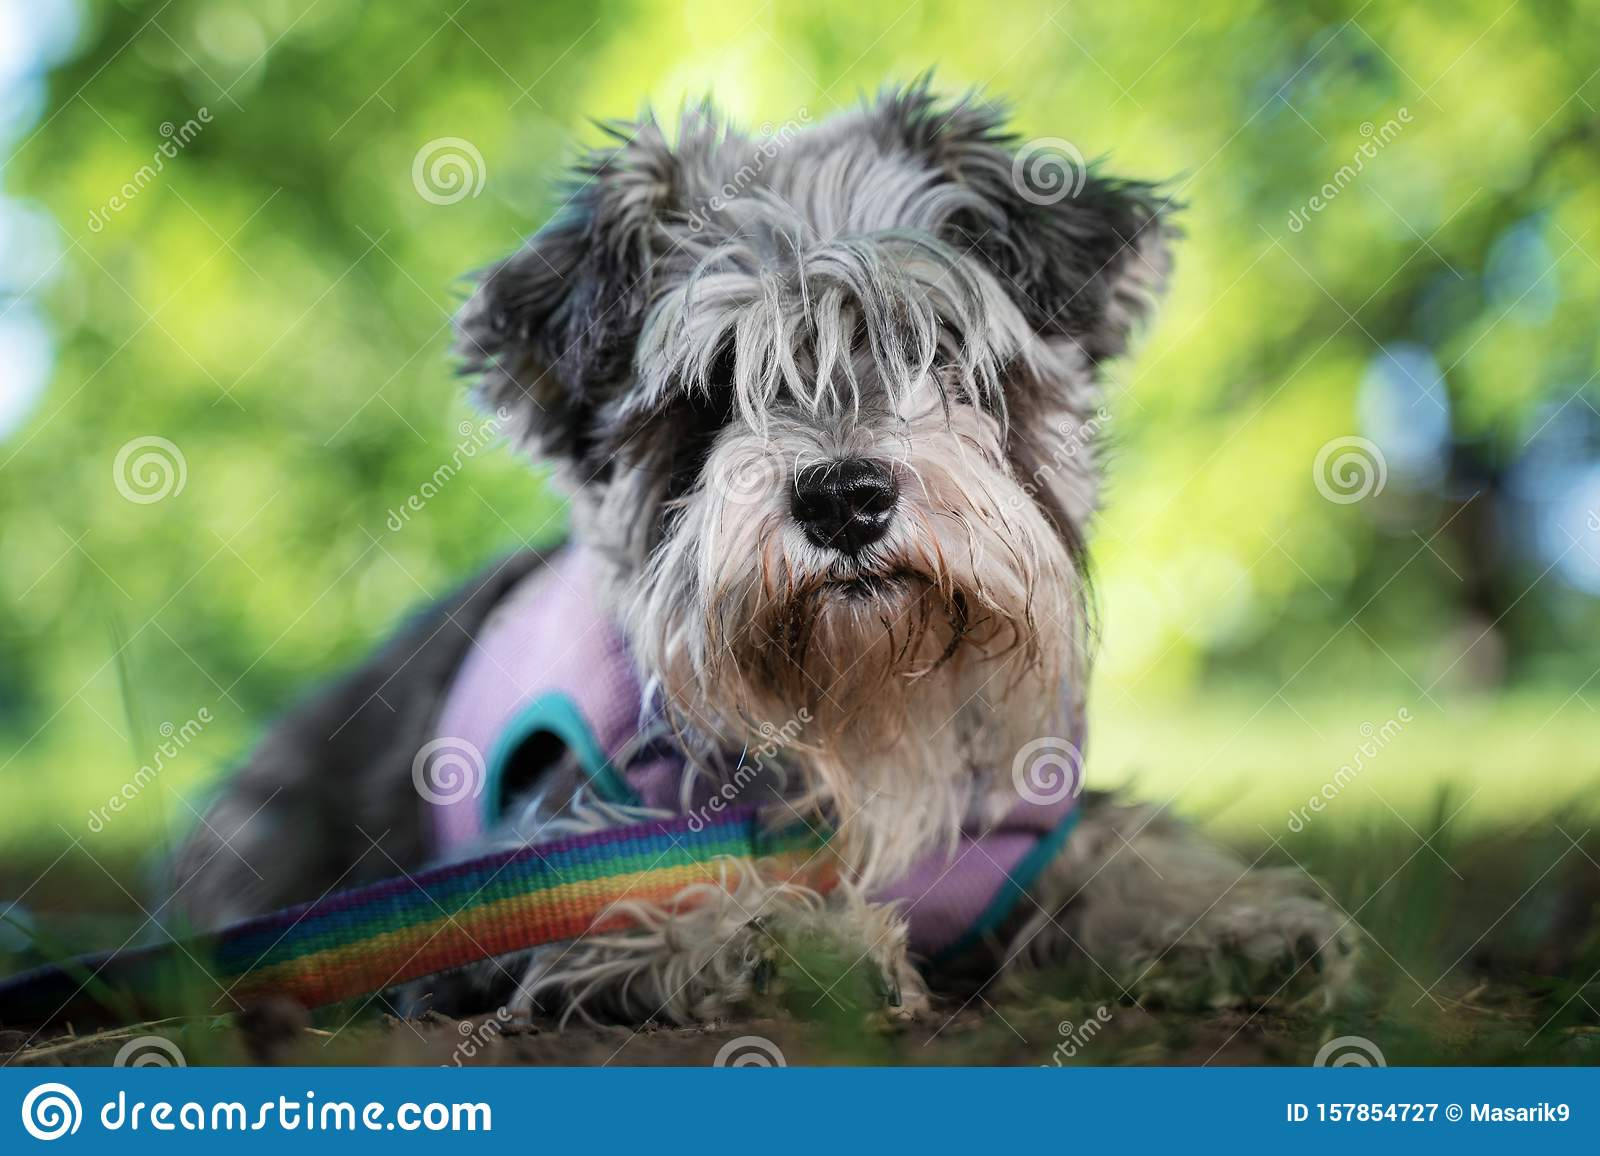 Portrait Of A Cute Dog Miniature Schnauzer Lies On The Grass In The Park Puppy Training And Obedience Stock Image Image Of Miniature Obedience 157854727